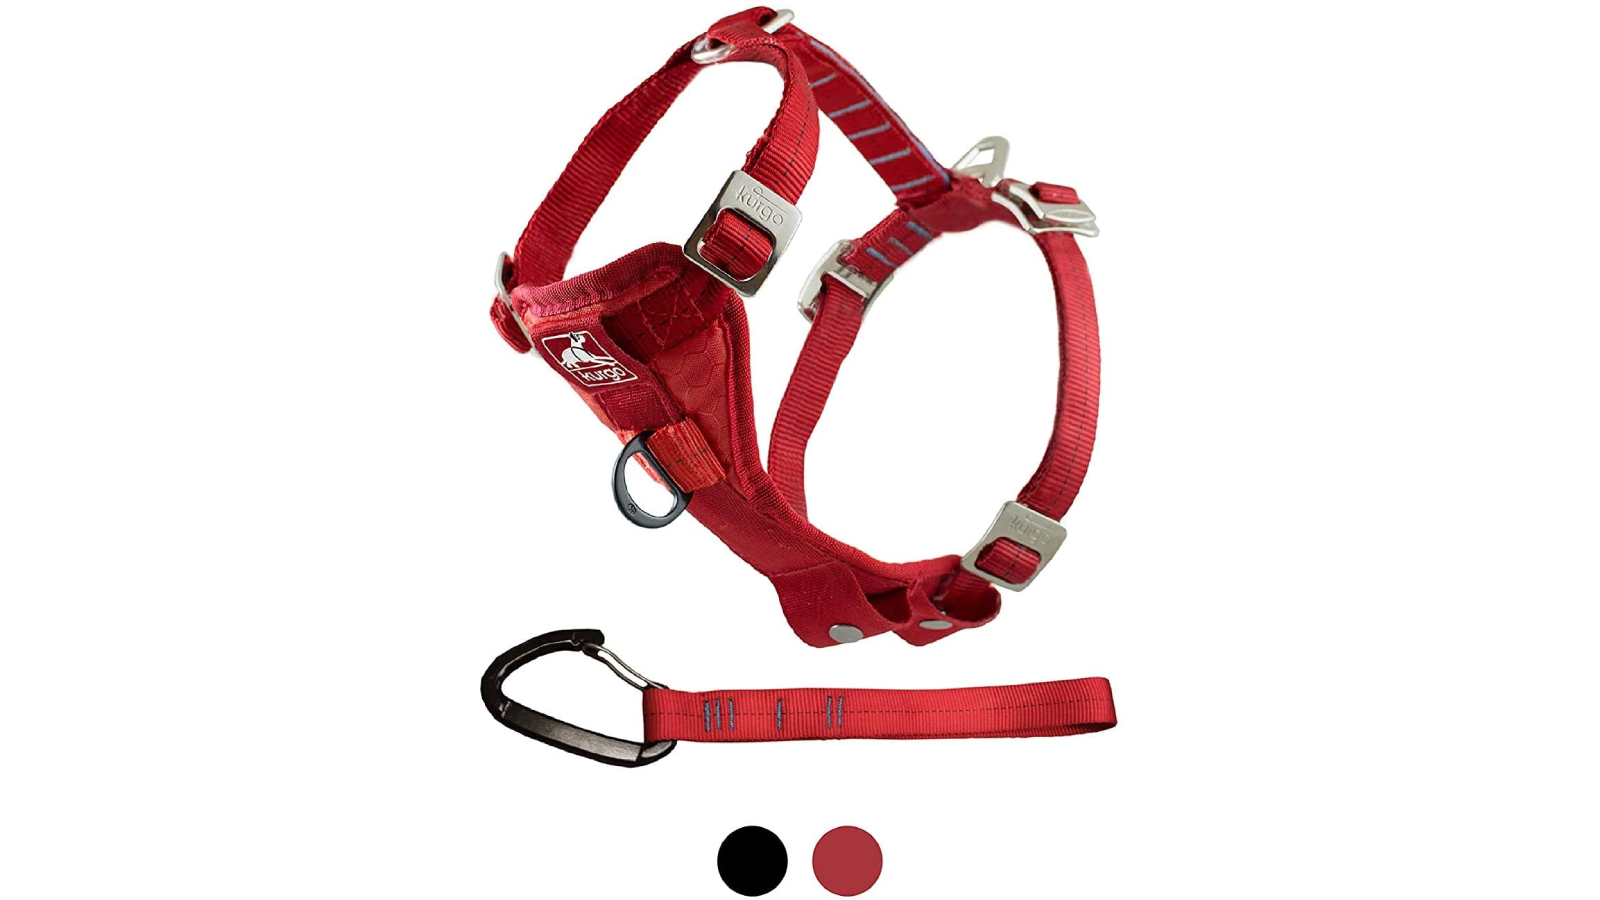 Red harness seatbelt with a tether.